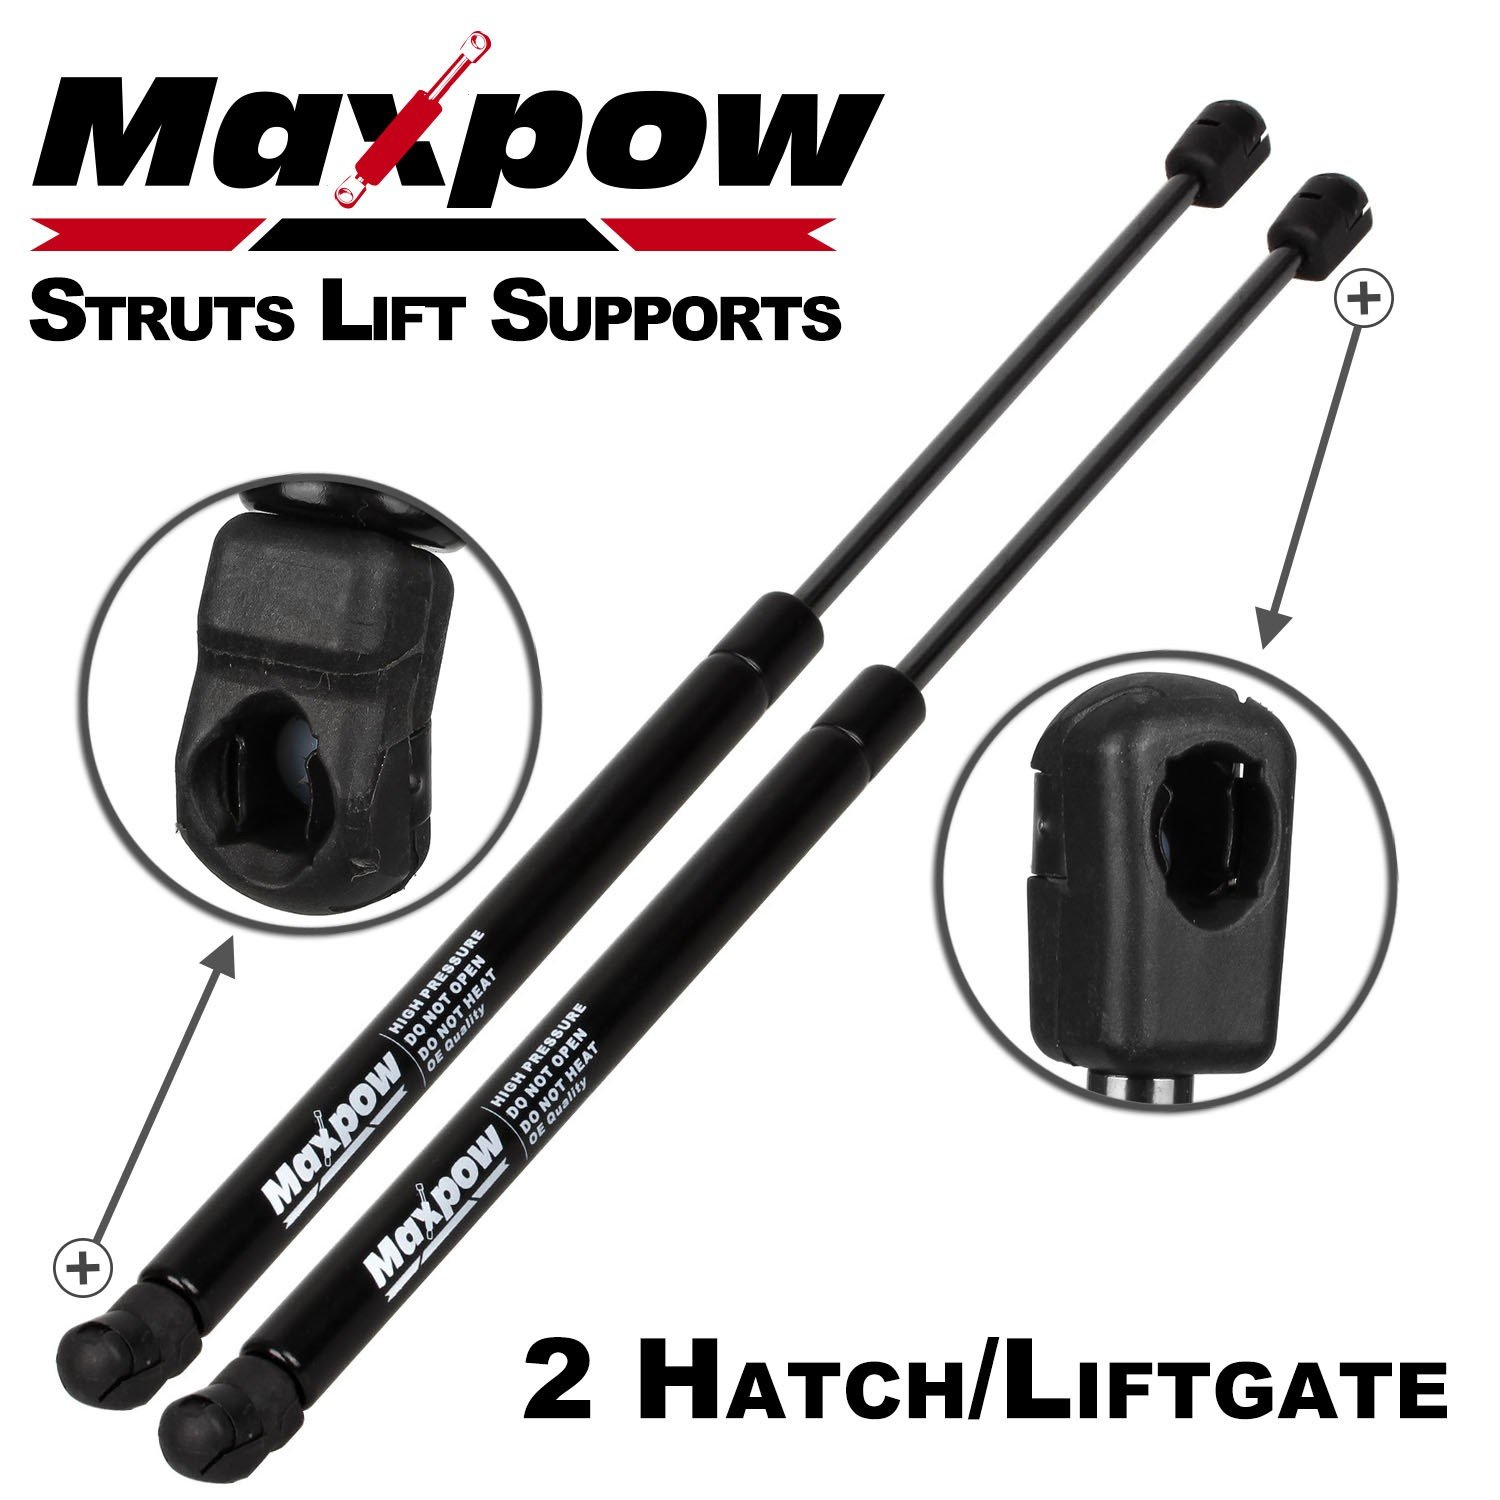 Partsam 2Pcs SG314044 Rear Hatch Liftgate Tailgate Lift Supports Shock Strut Arm with Power Liftgate & Gobi Ladder Compatible With Jeep Grand Cherokee 2005 2006 2007 2008 2009 2010